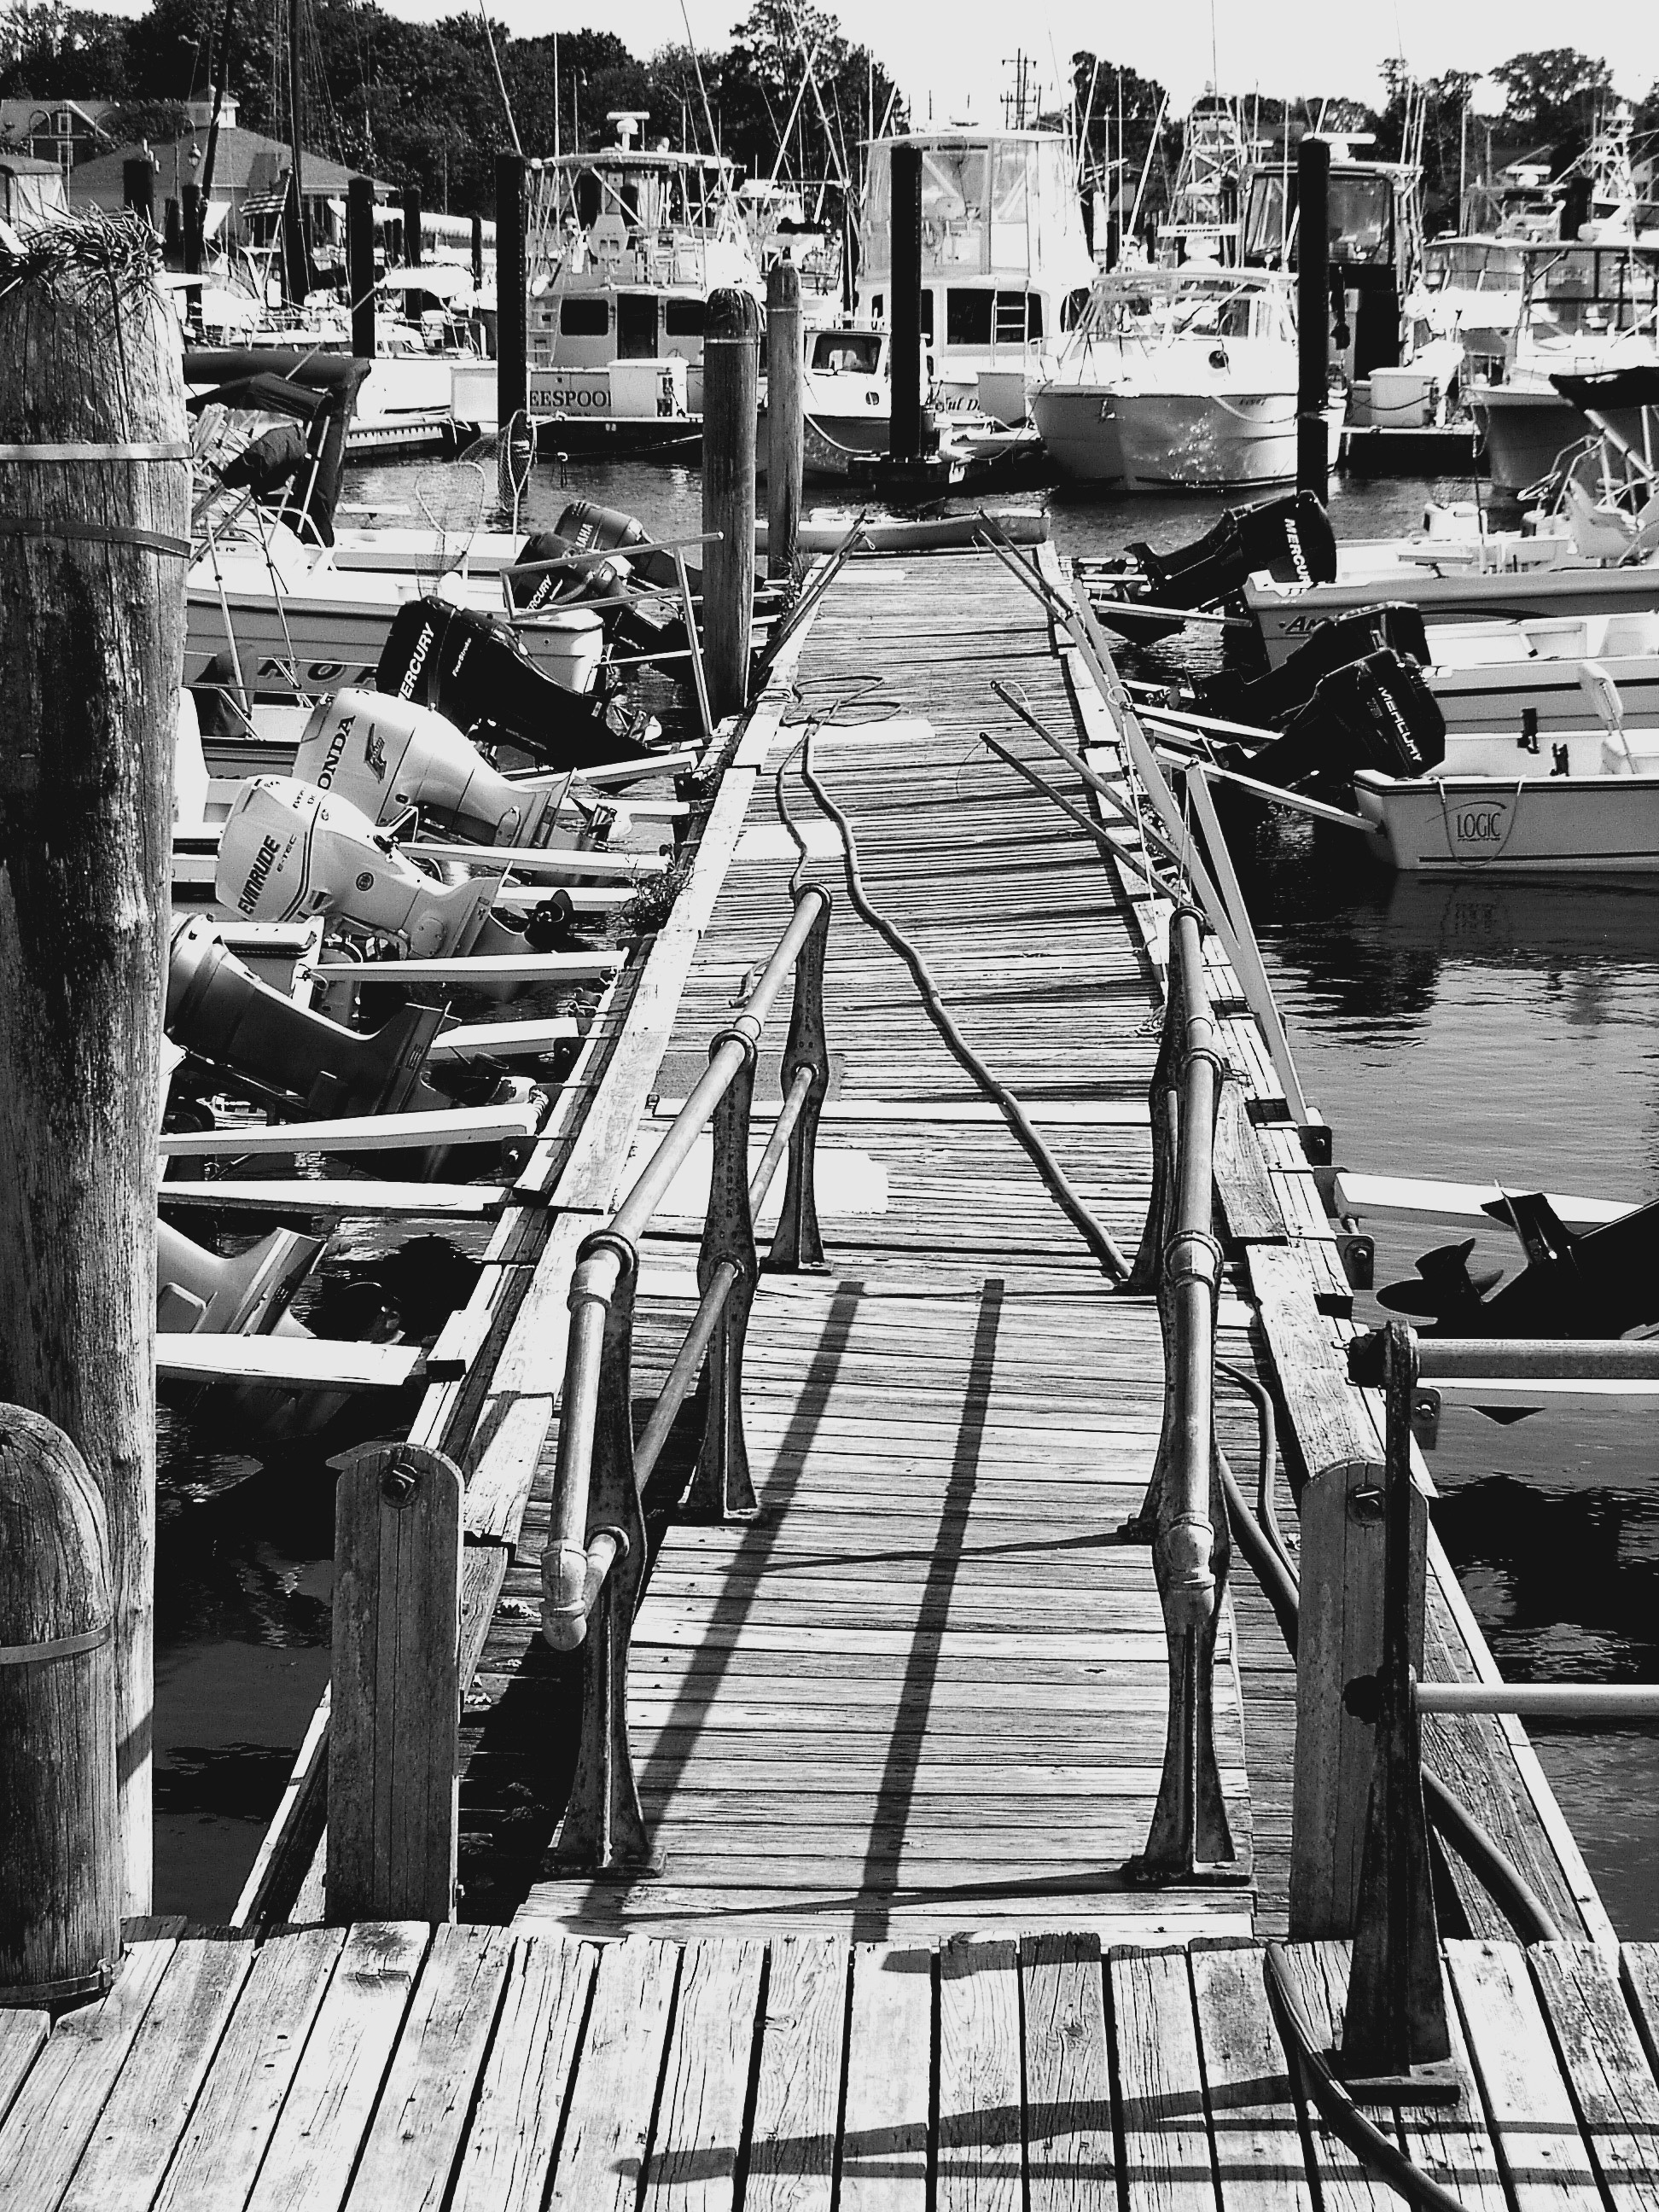 New Jersey Marina Boat Dock